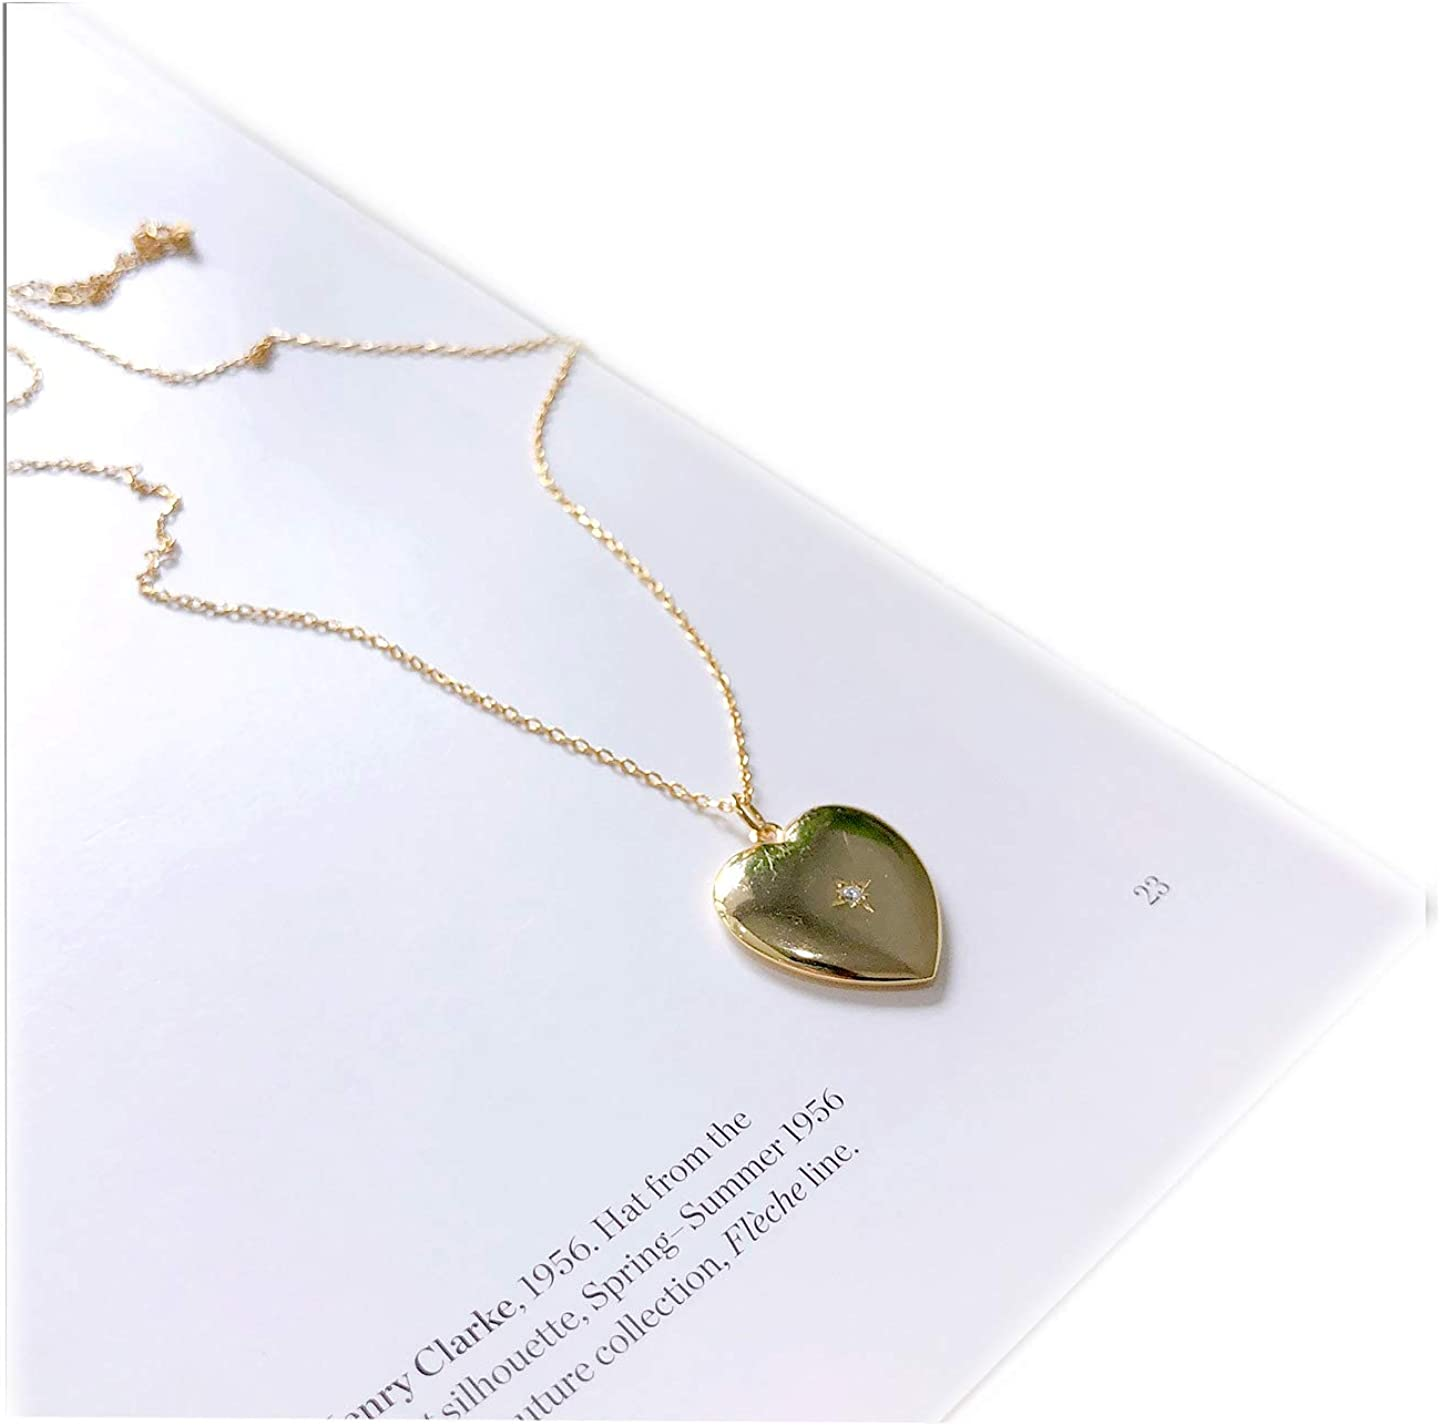 Anniversary gift for her Love earrings Cubic zirconia Birthday gift Delicate Dainty Gold charm necklace Heart pendant necklace